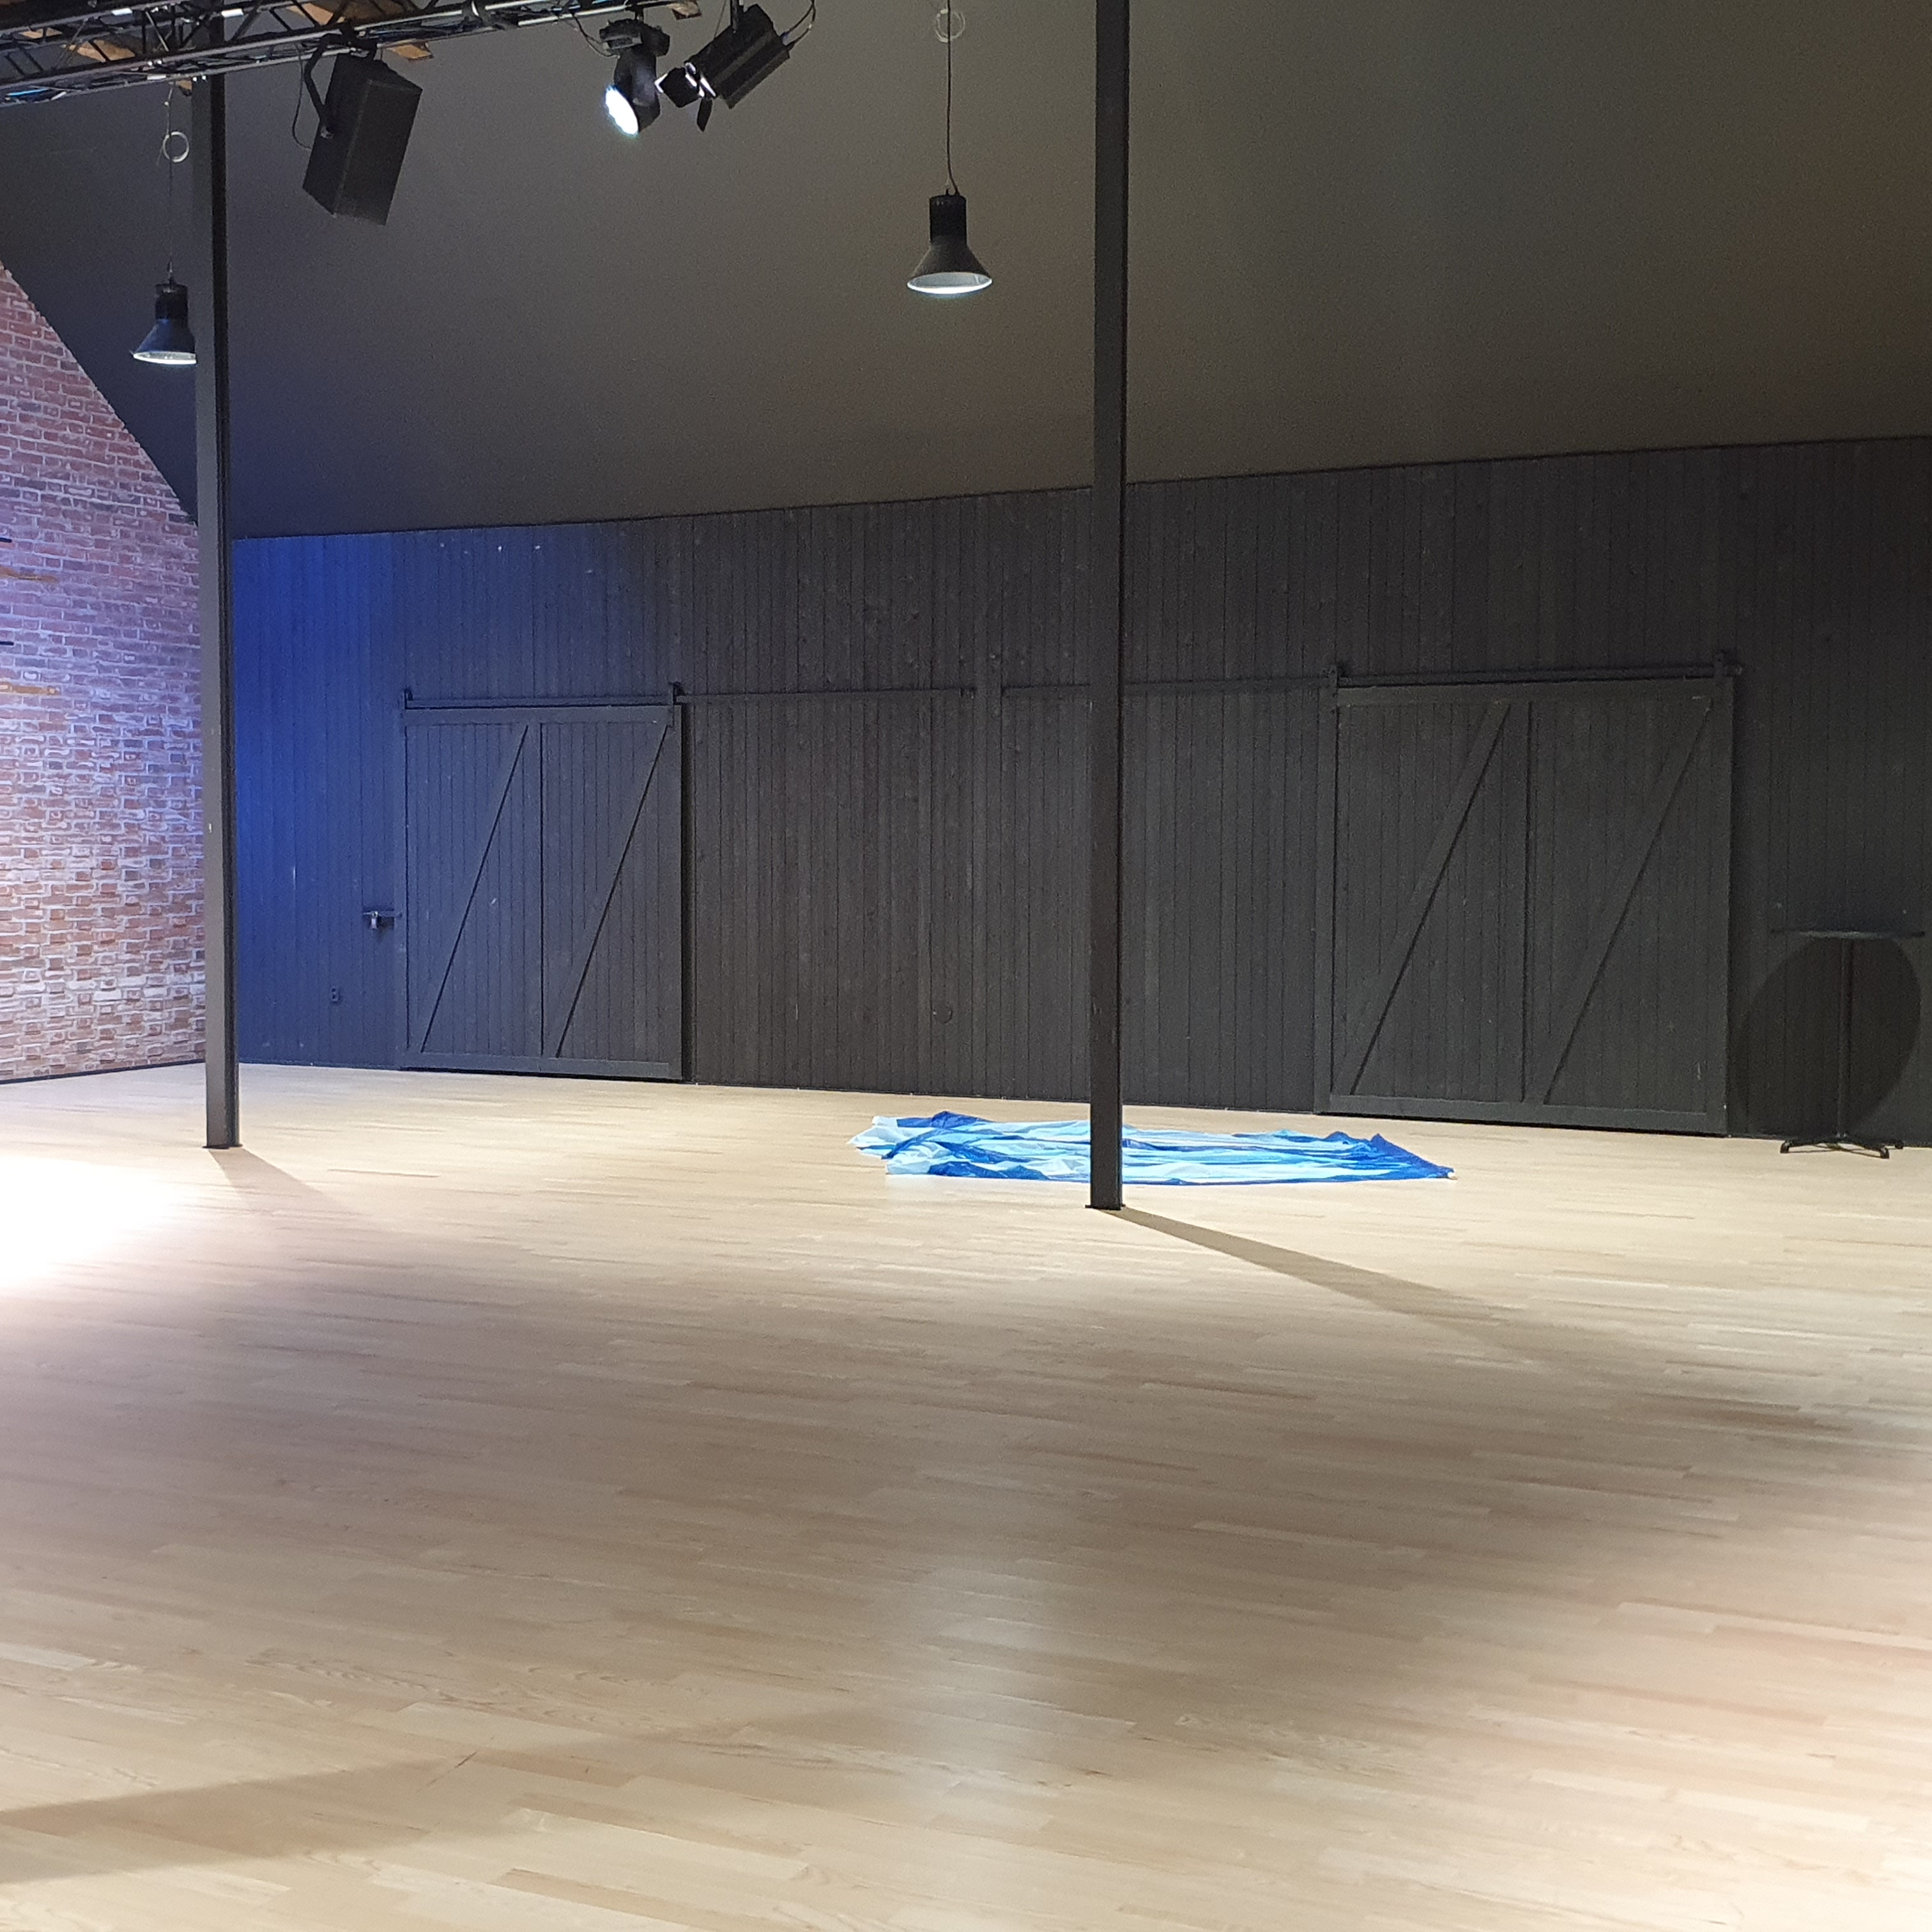 A view of Hugo Sali showing a light coloured wooden floor with a black wooden wall